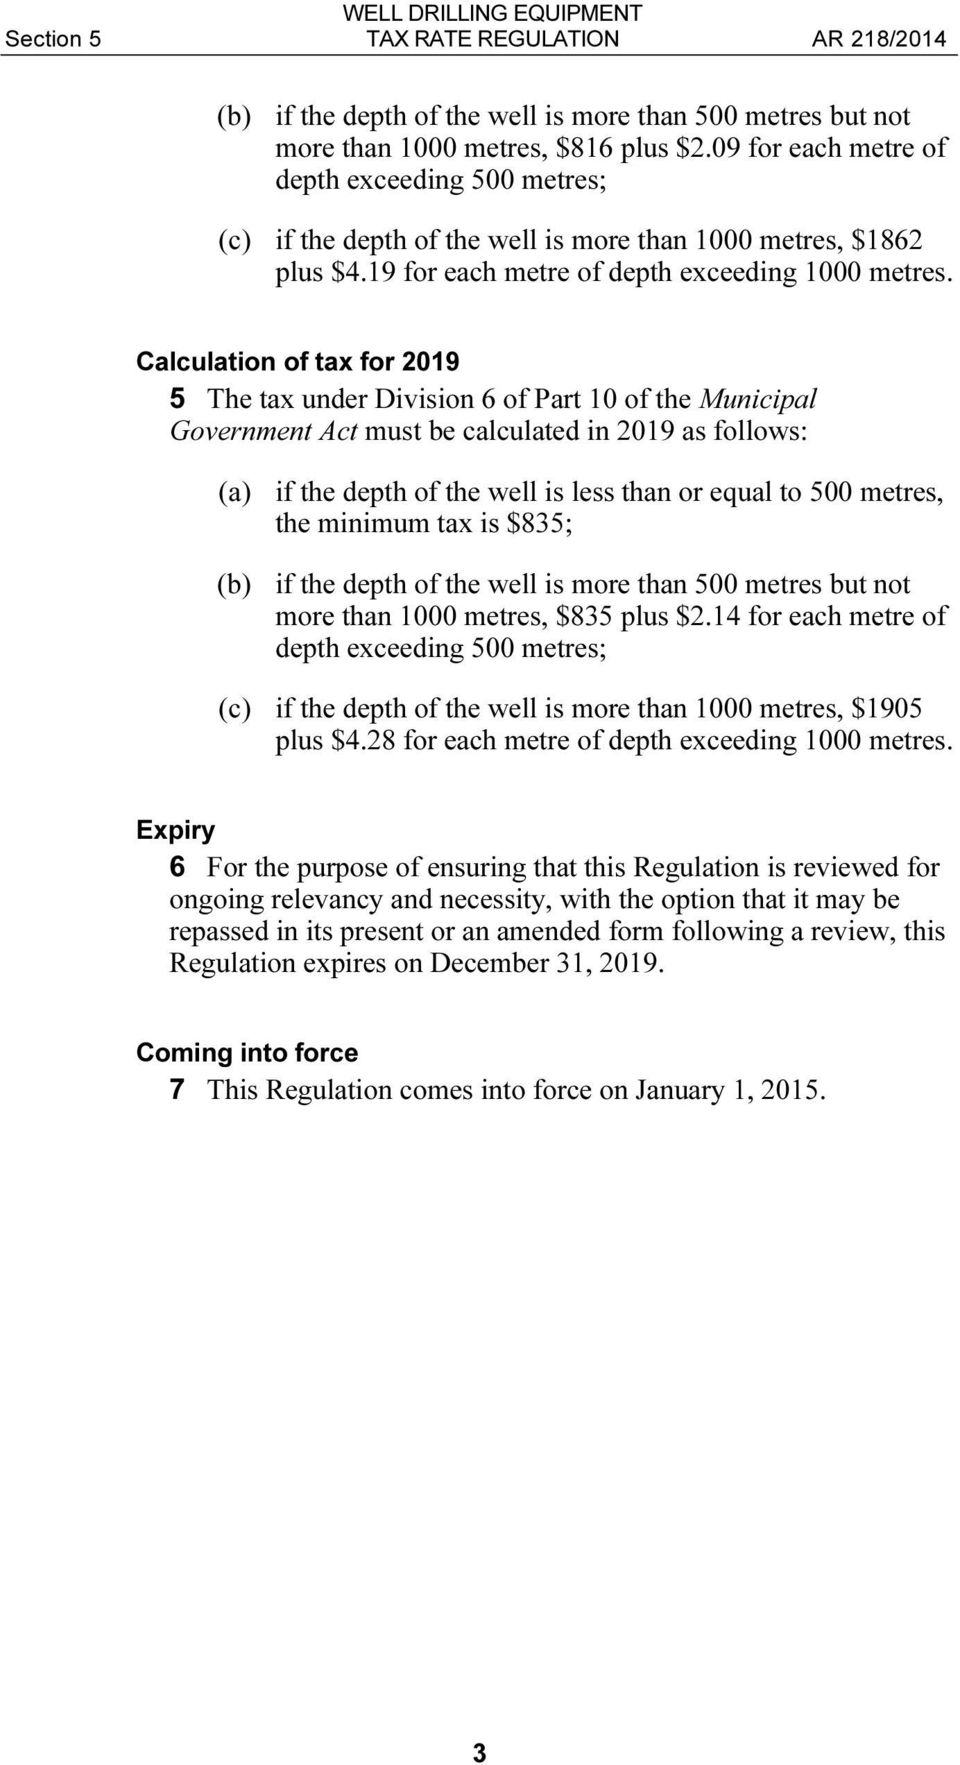 Calculation of tax for 2019 5 The tax under Division 6 of Part 10 of the Municipal Government Act must be calculated in 2019 as follows: (a) if the depth of the well is less than or equal to 500